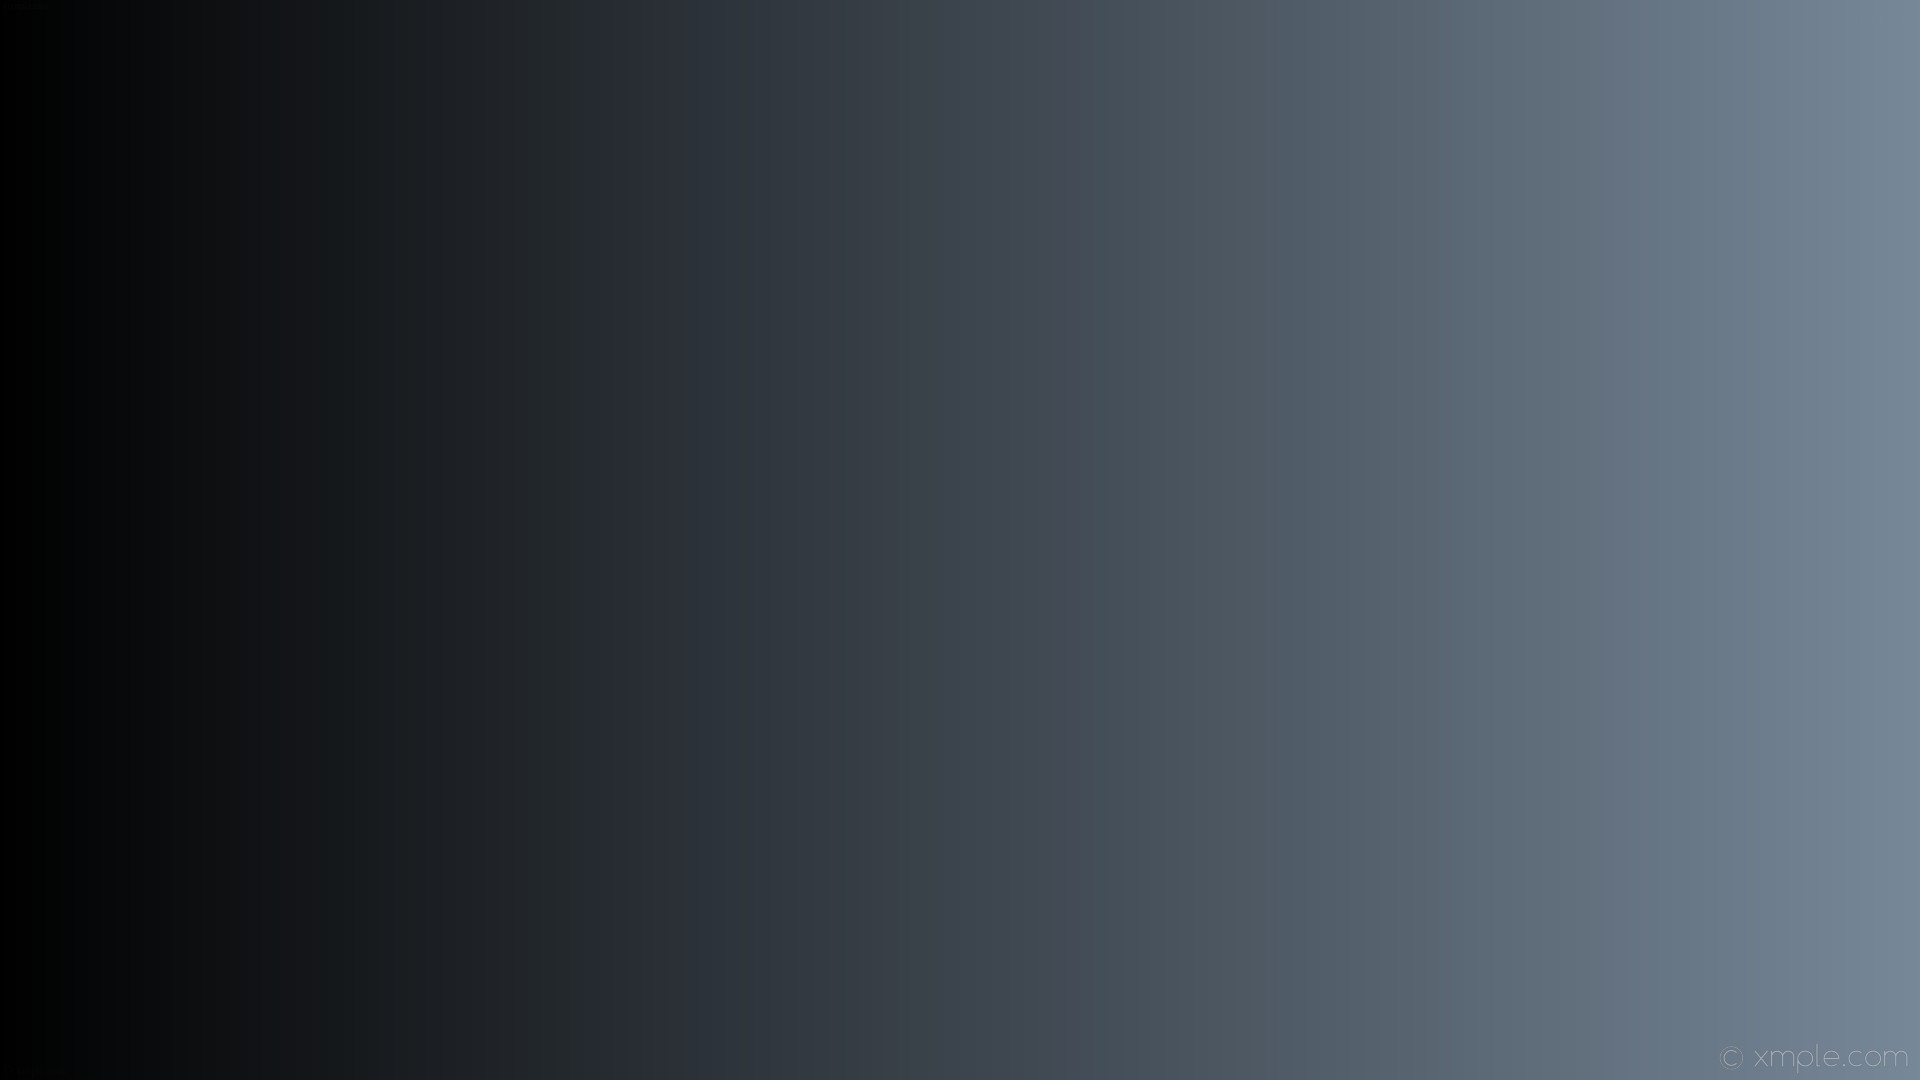 wallpaper black linear gradient grey light slate gray #778899 #000000 0°